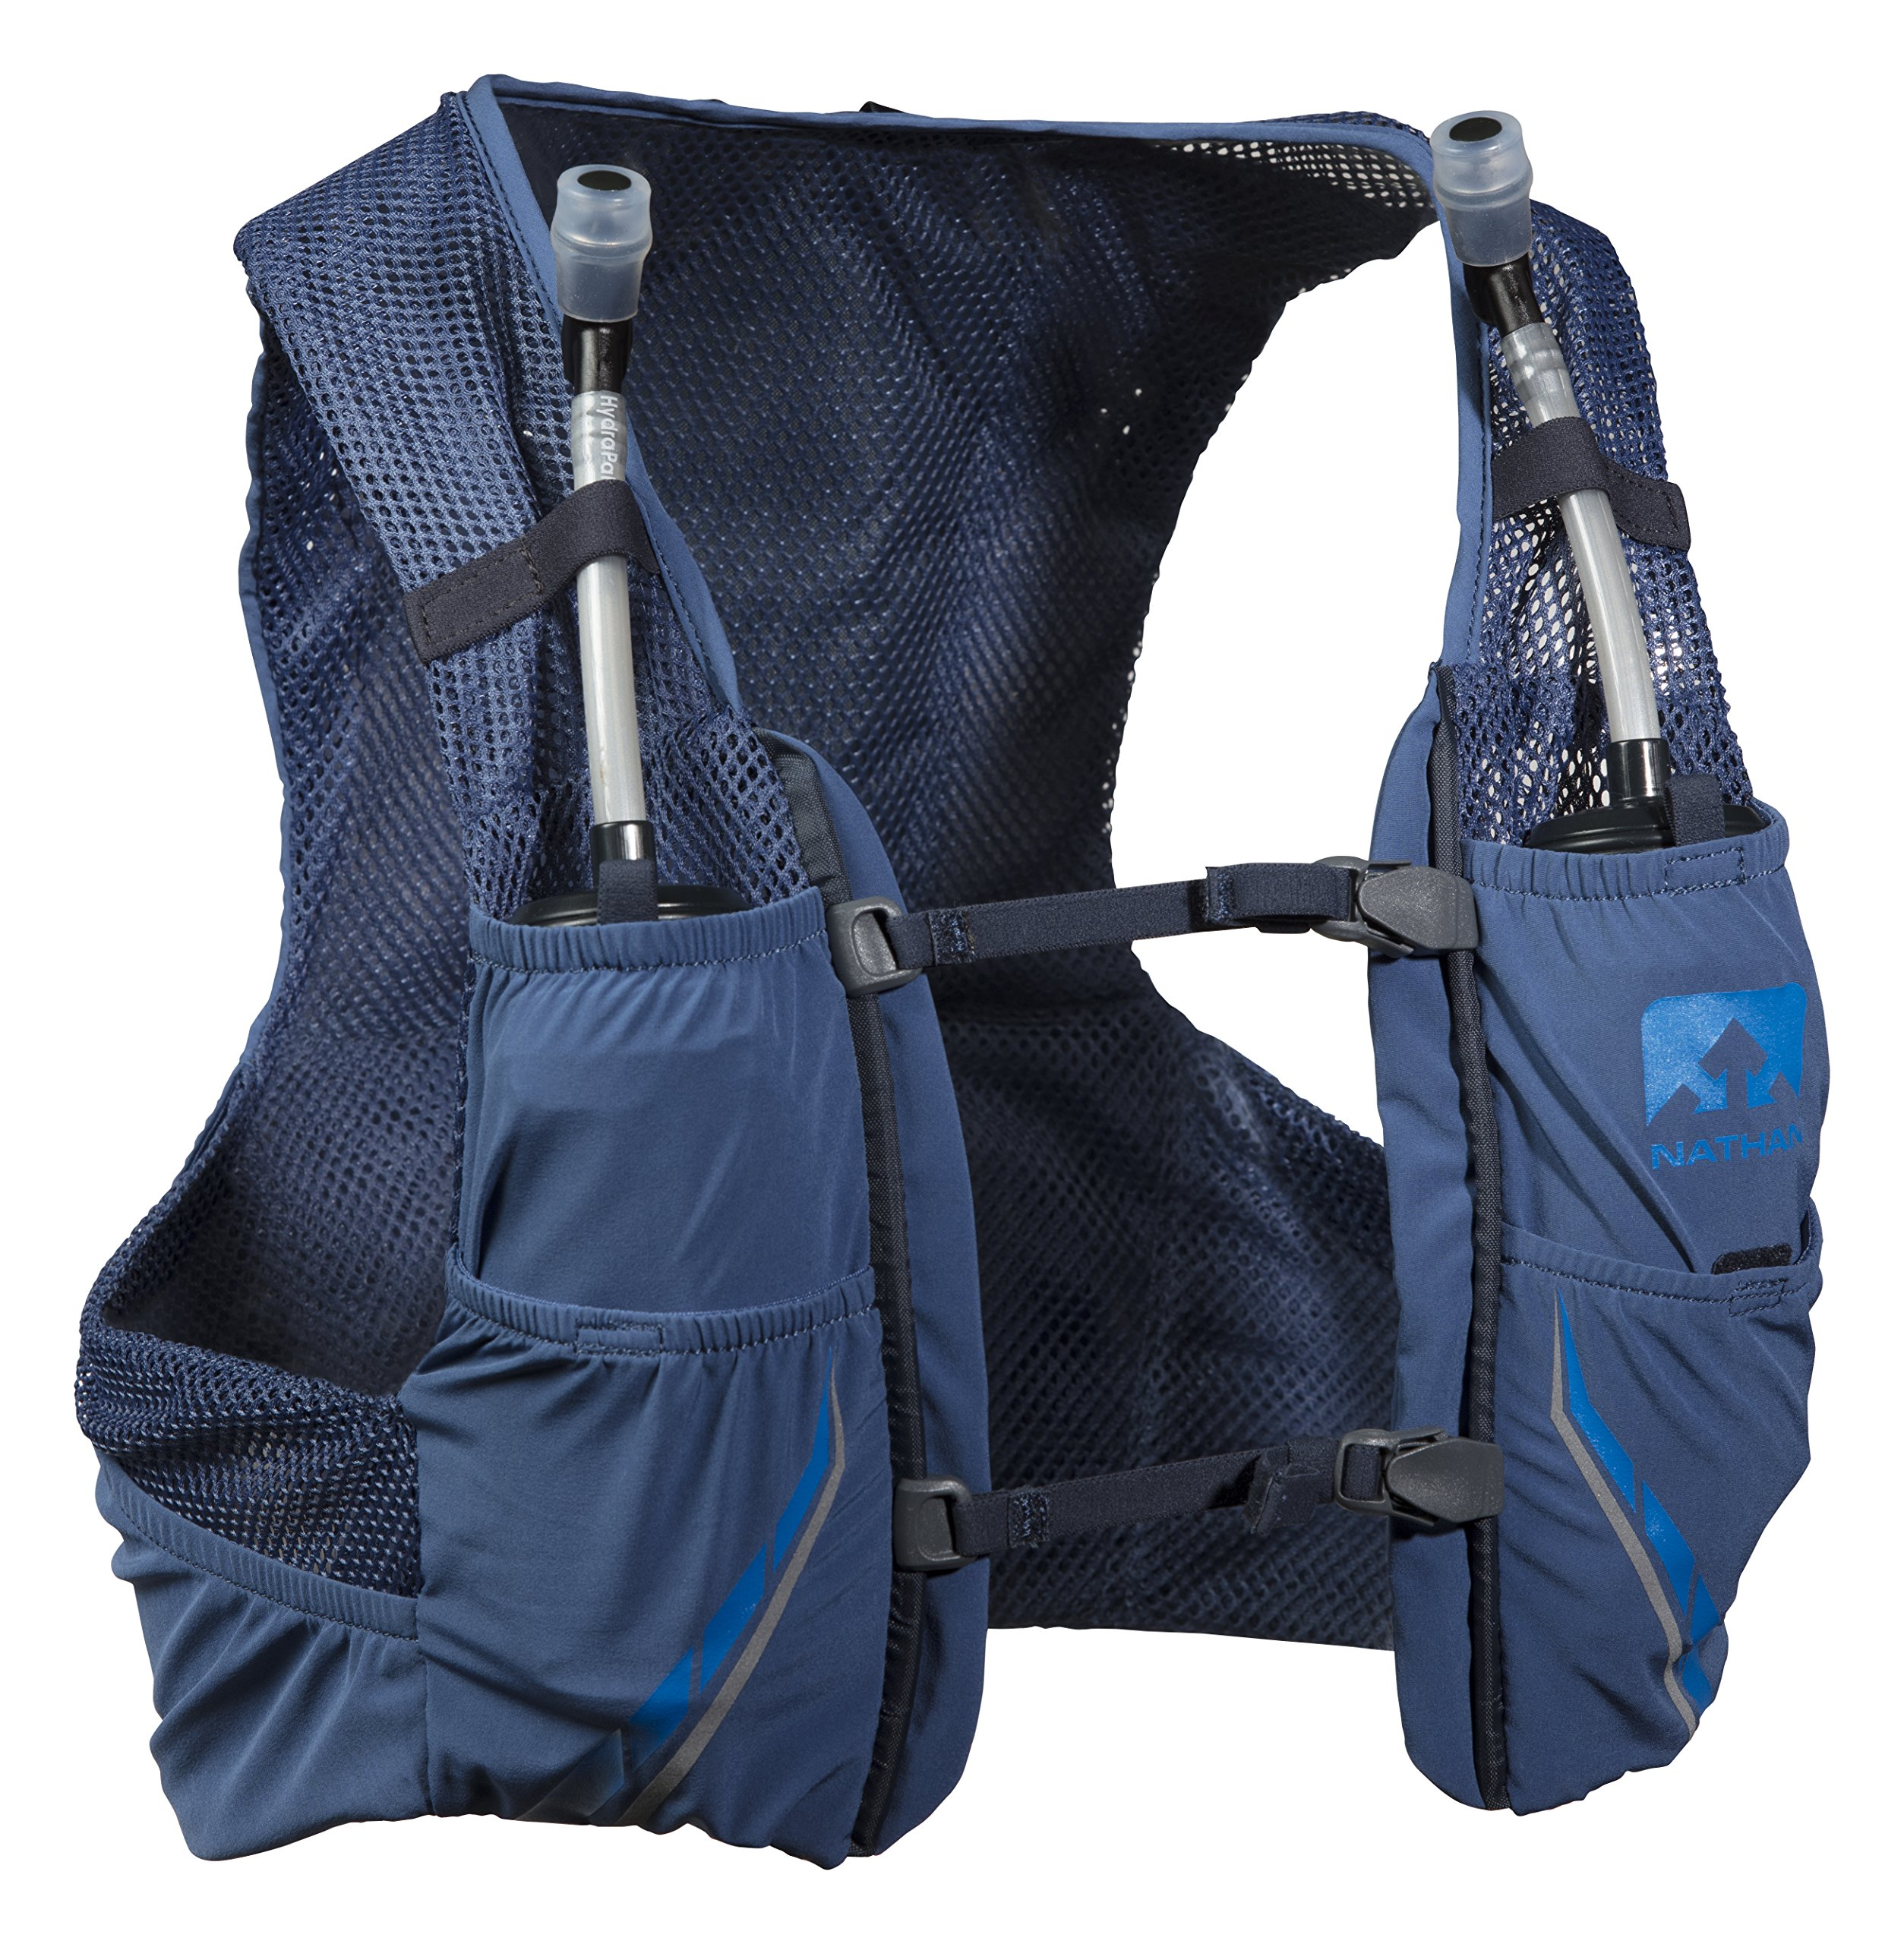 Nathan NS4544-0377-34 Male 2.5L Running Hydration Packs, True Navy/Blue Nights, Large